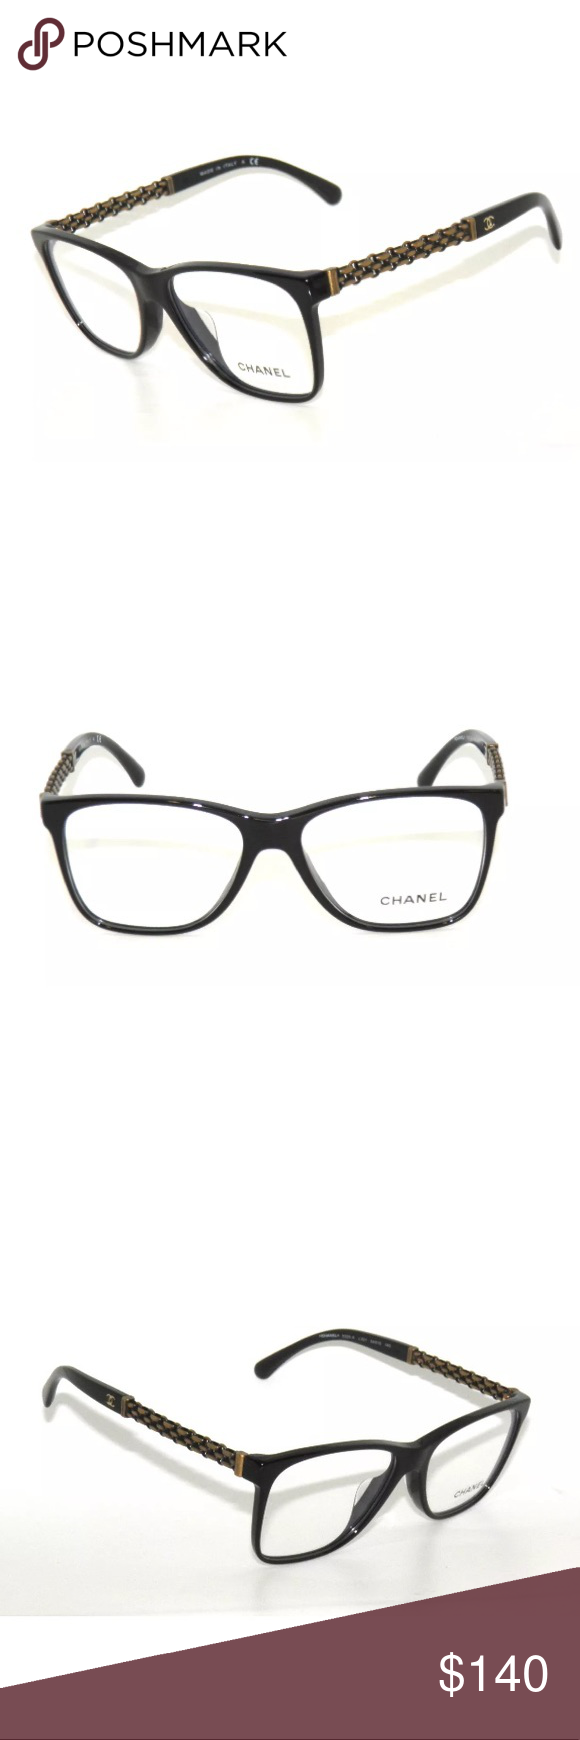 3e3a0b95f554 🎈CHANEL 3320A BLACK AND CHAIN EYEGLASSES 54mm BRAND NEW